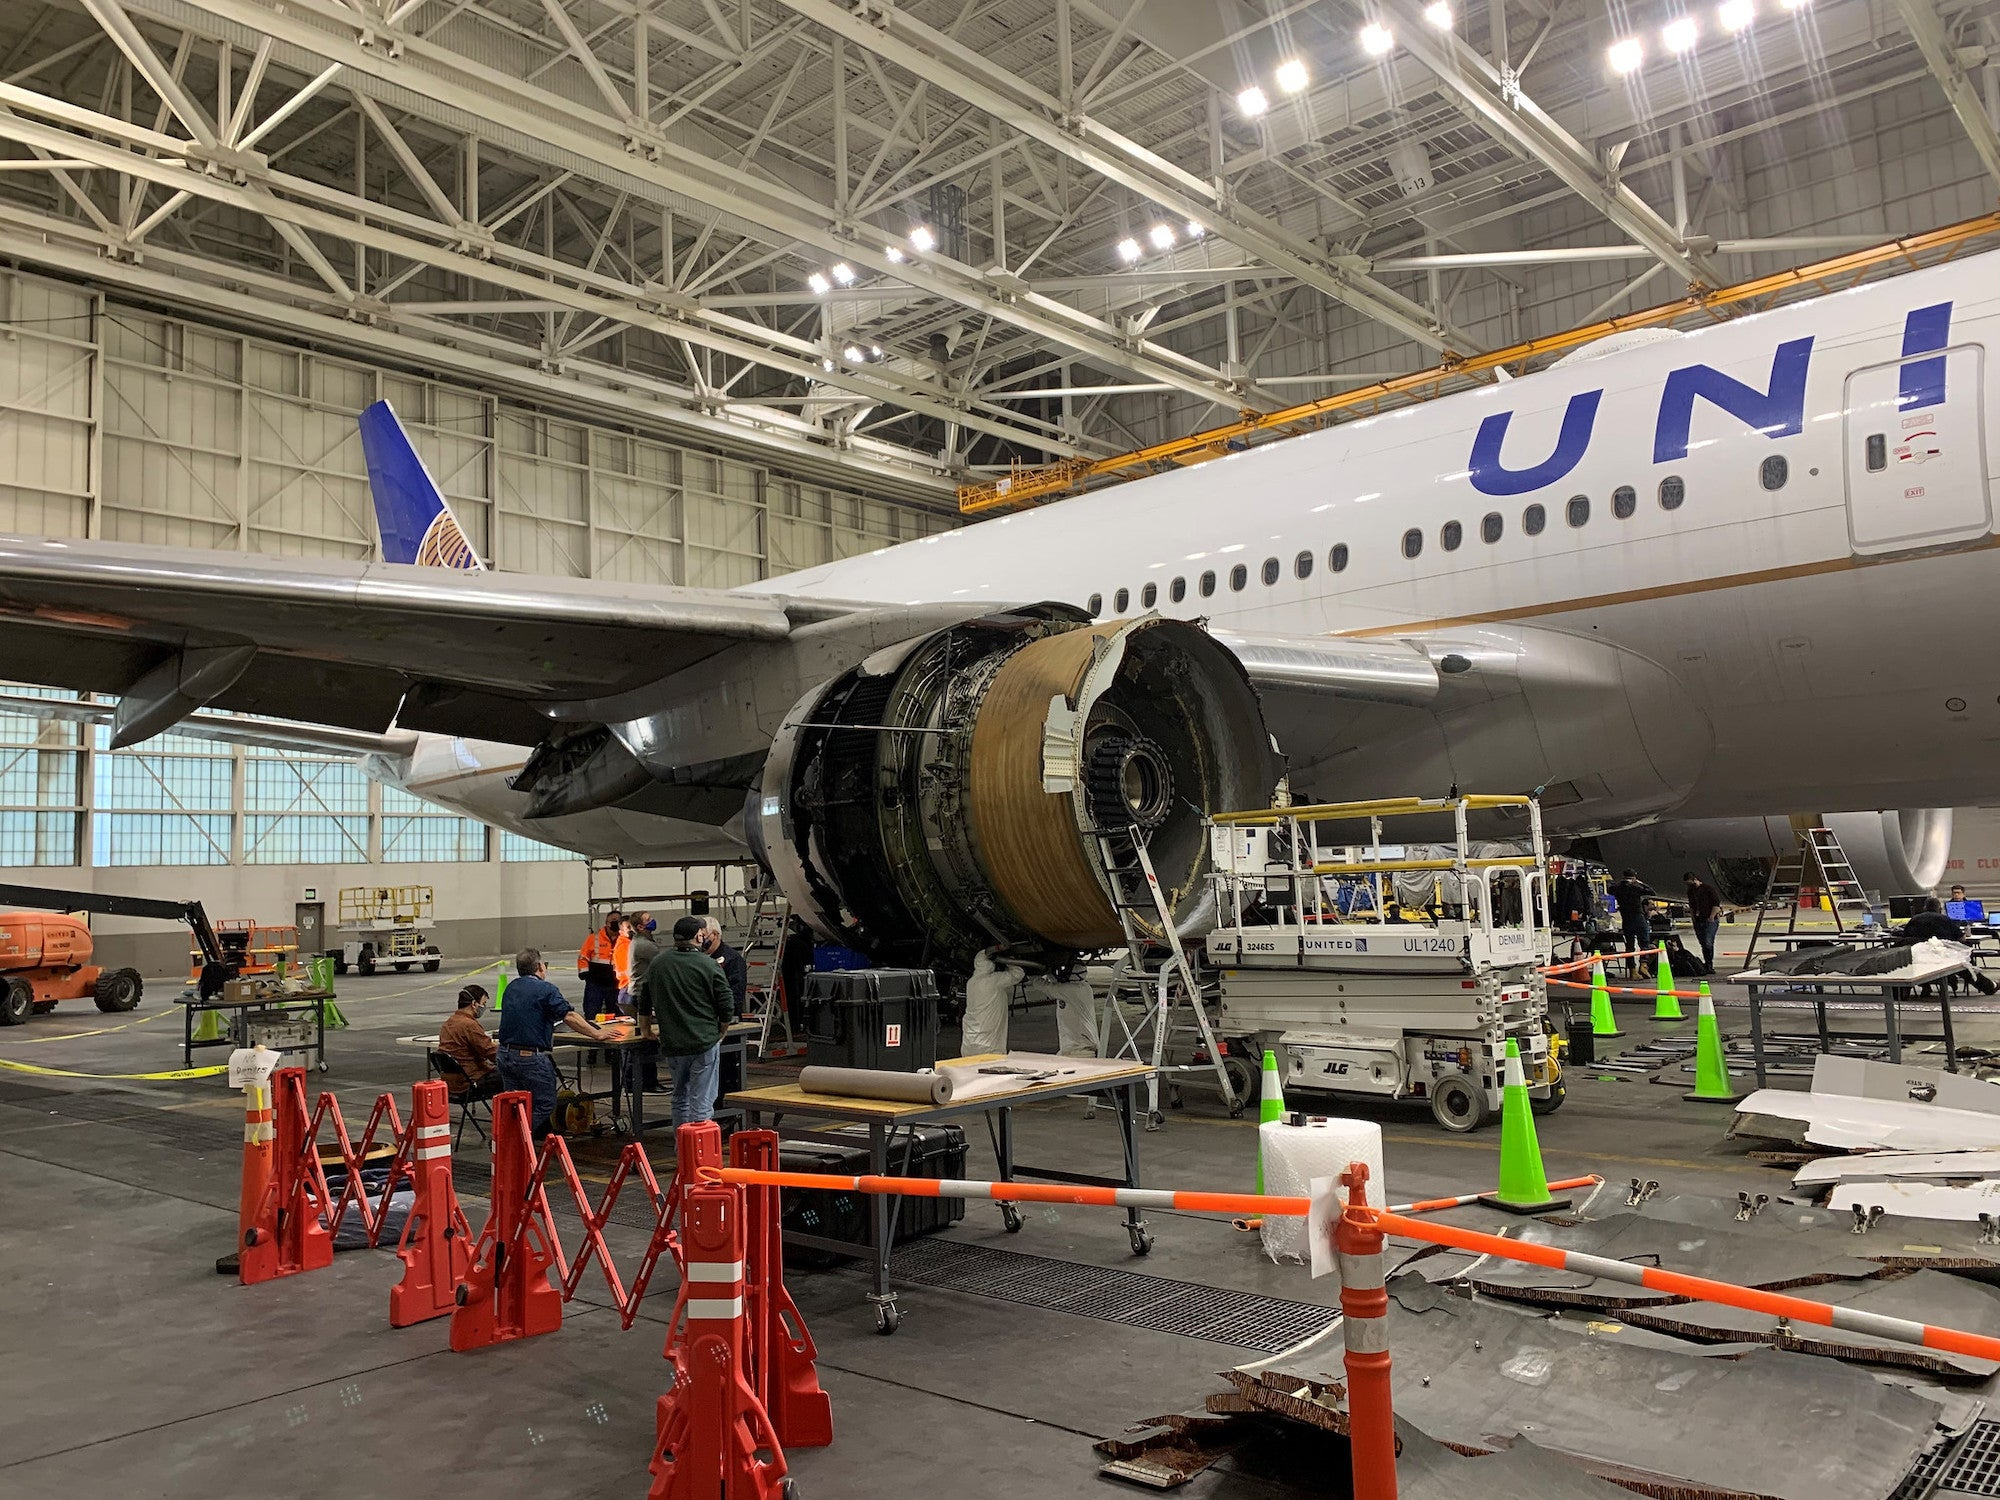 Boeing's damaged 777-200 parked in a hanger following an incident with its engine on Flight 328 on February 20.